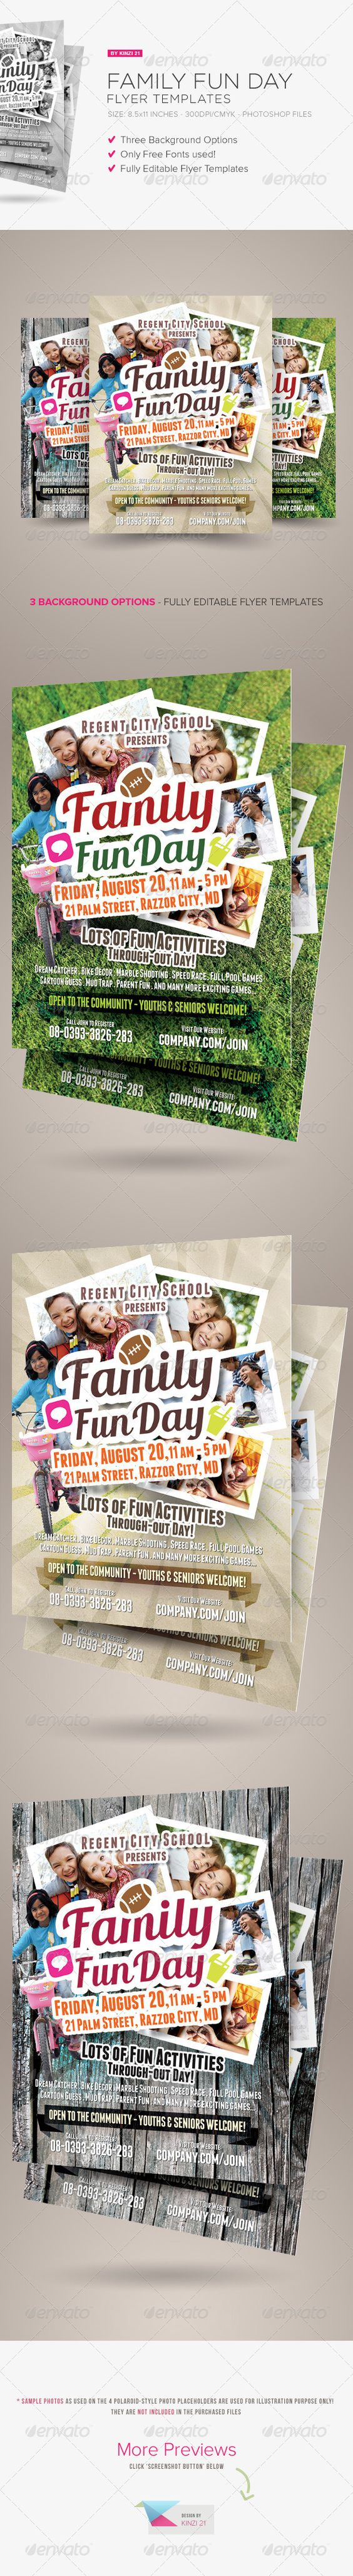 family fun day flyers template psd buy and download. Black Bedroom Furniture Sets. Home Design Ideas